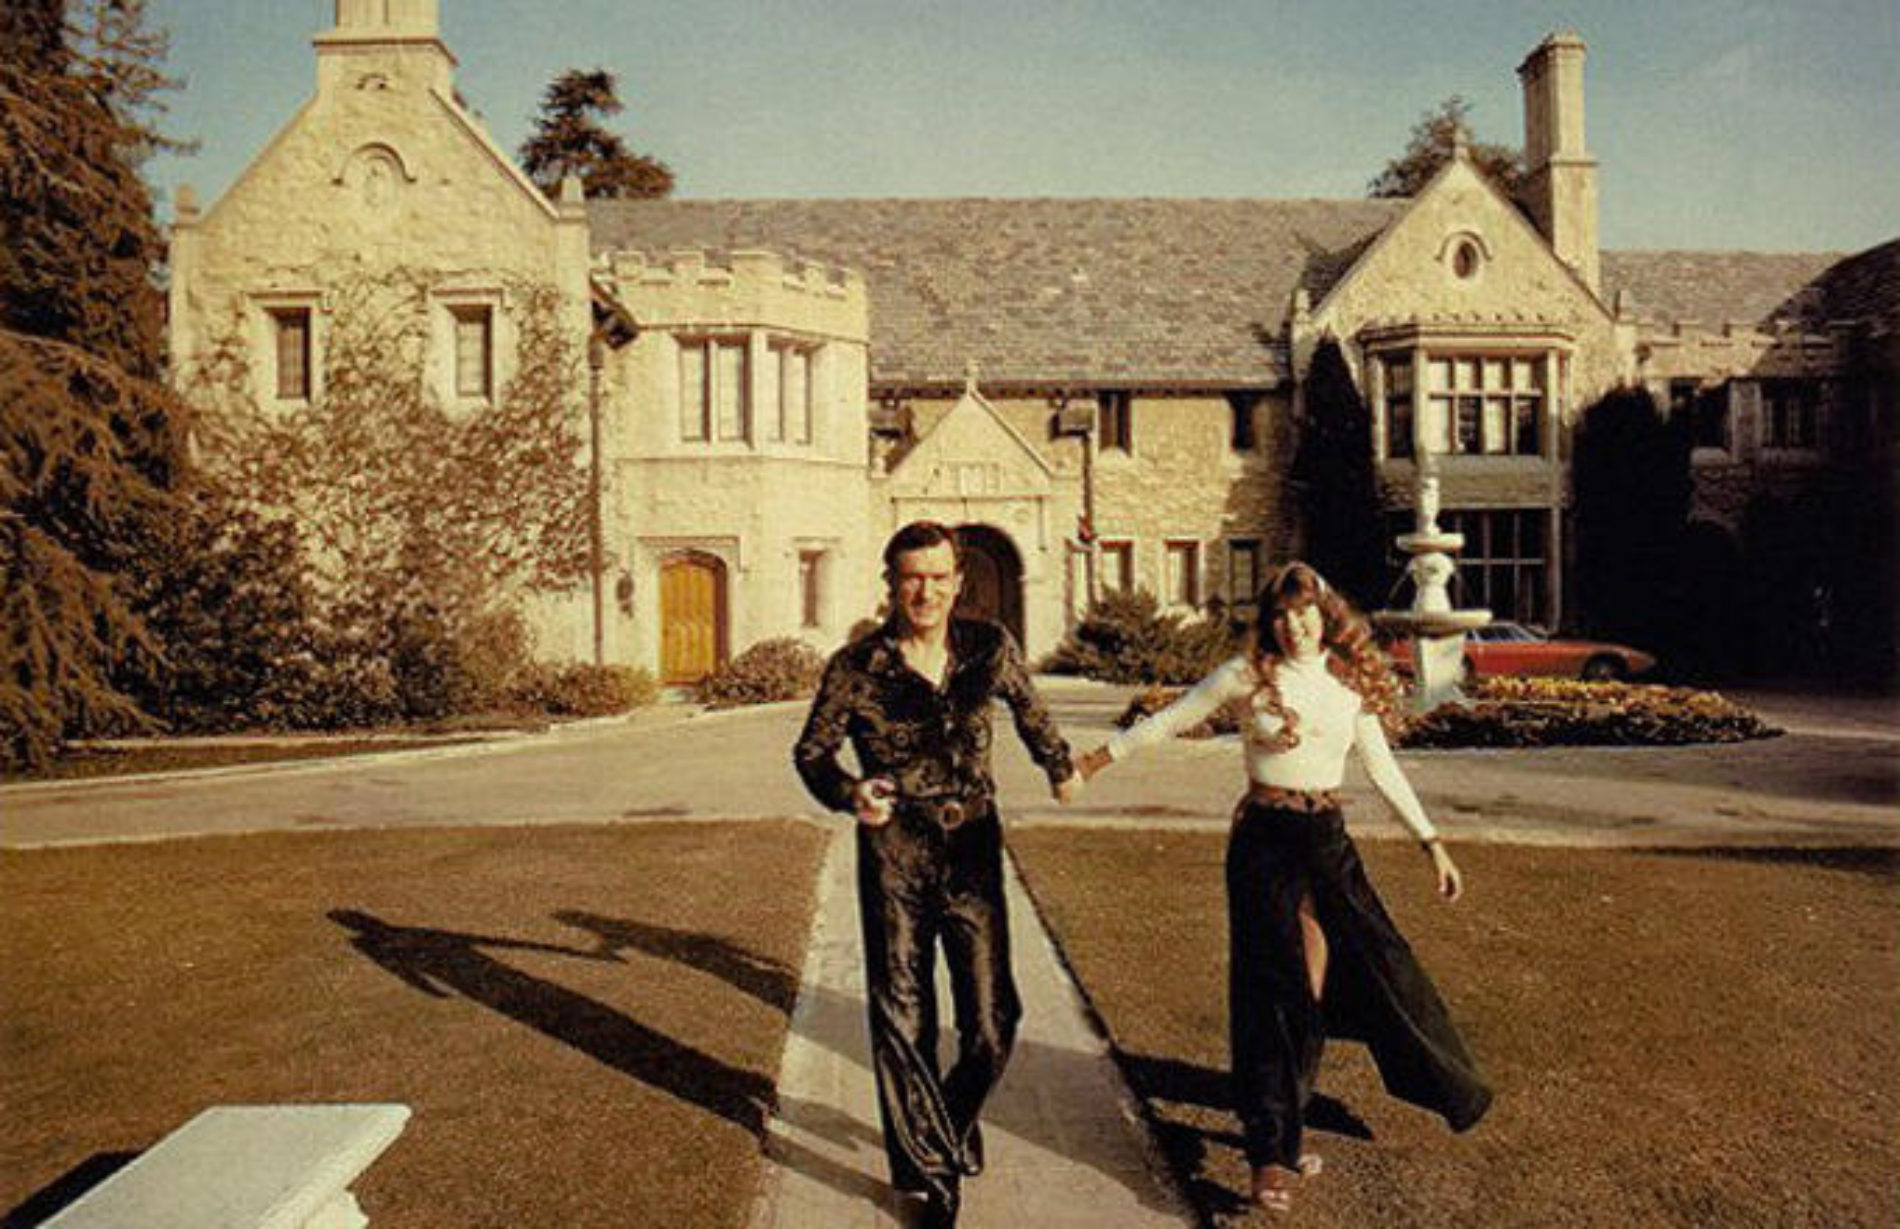 The Playboy Mansion Has Found A Buyer: 42 Enticing Facts About The Playboy Mansion